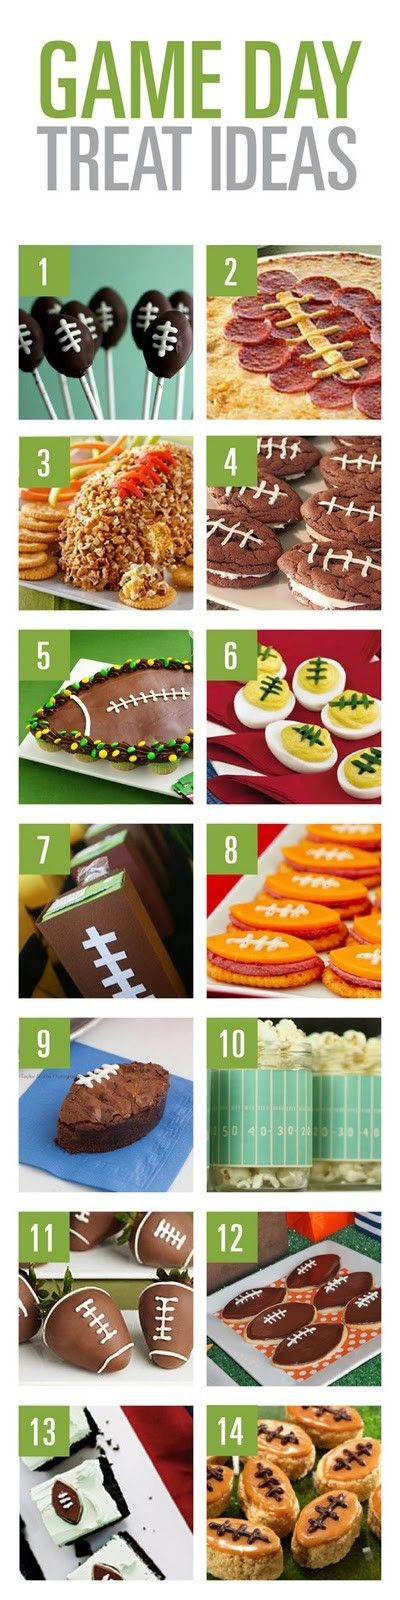 Lauren could use these ideas for Superbowl!!